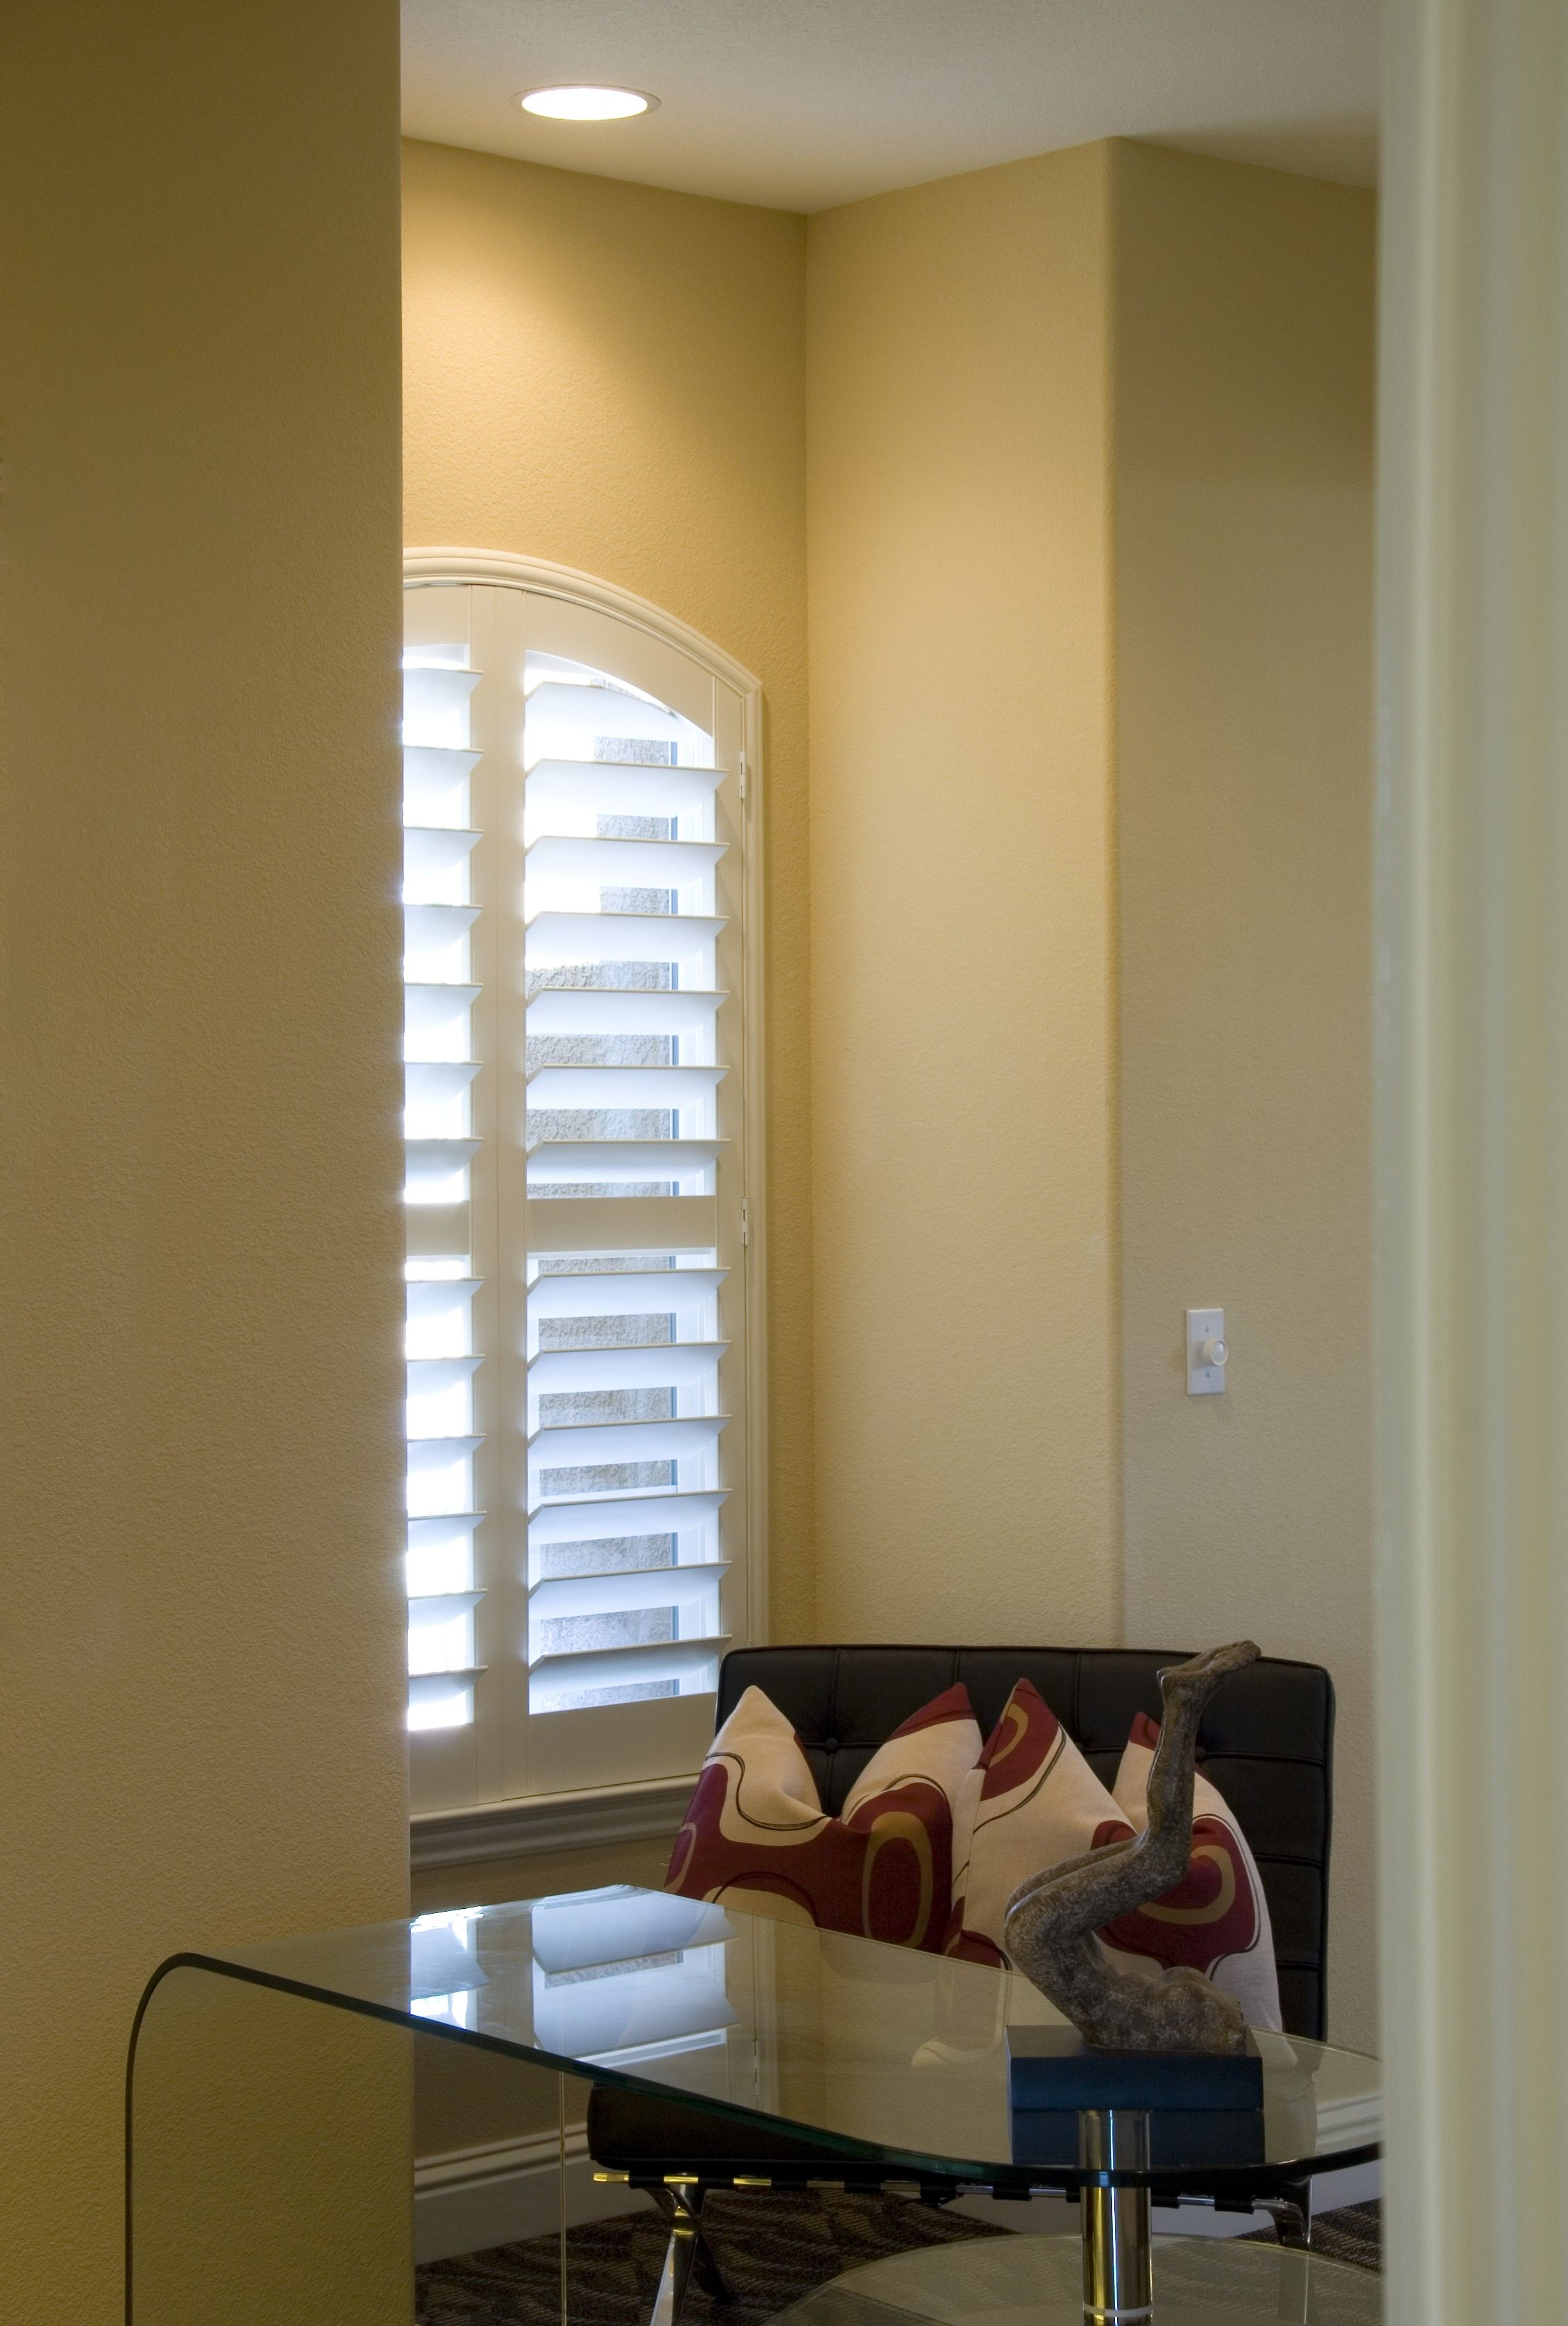 the blinds add custom home to carehomedecor decor shutters shades